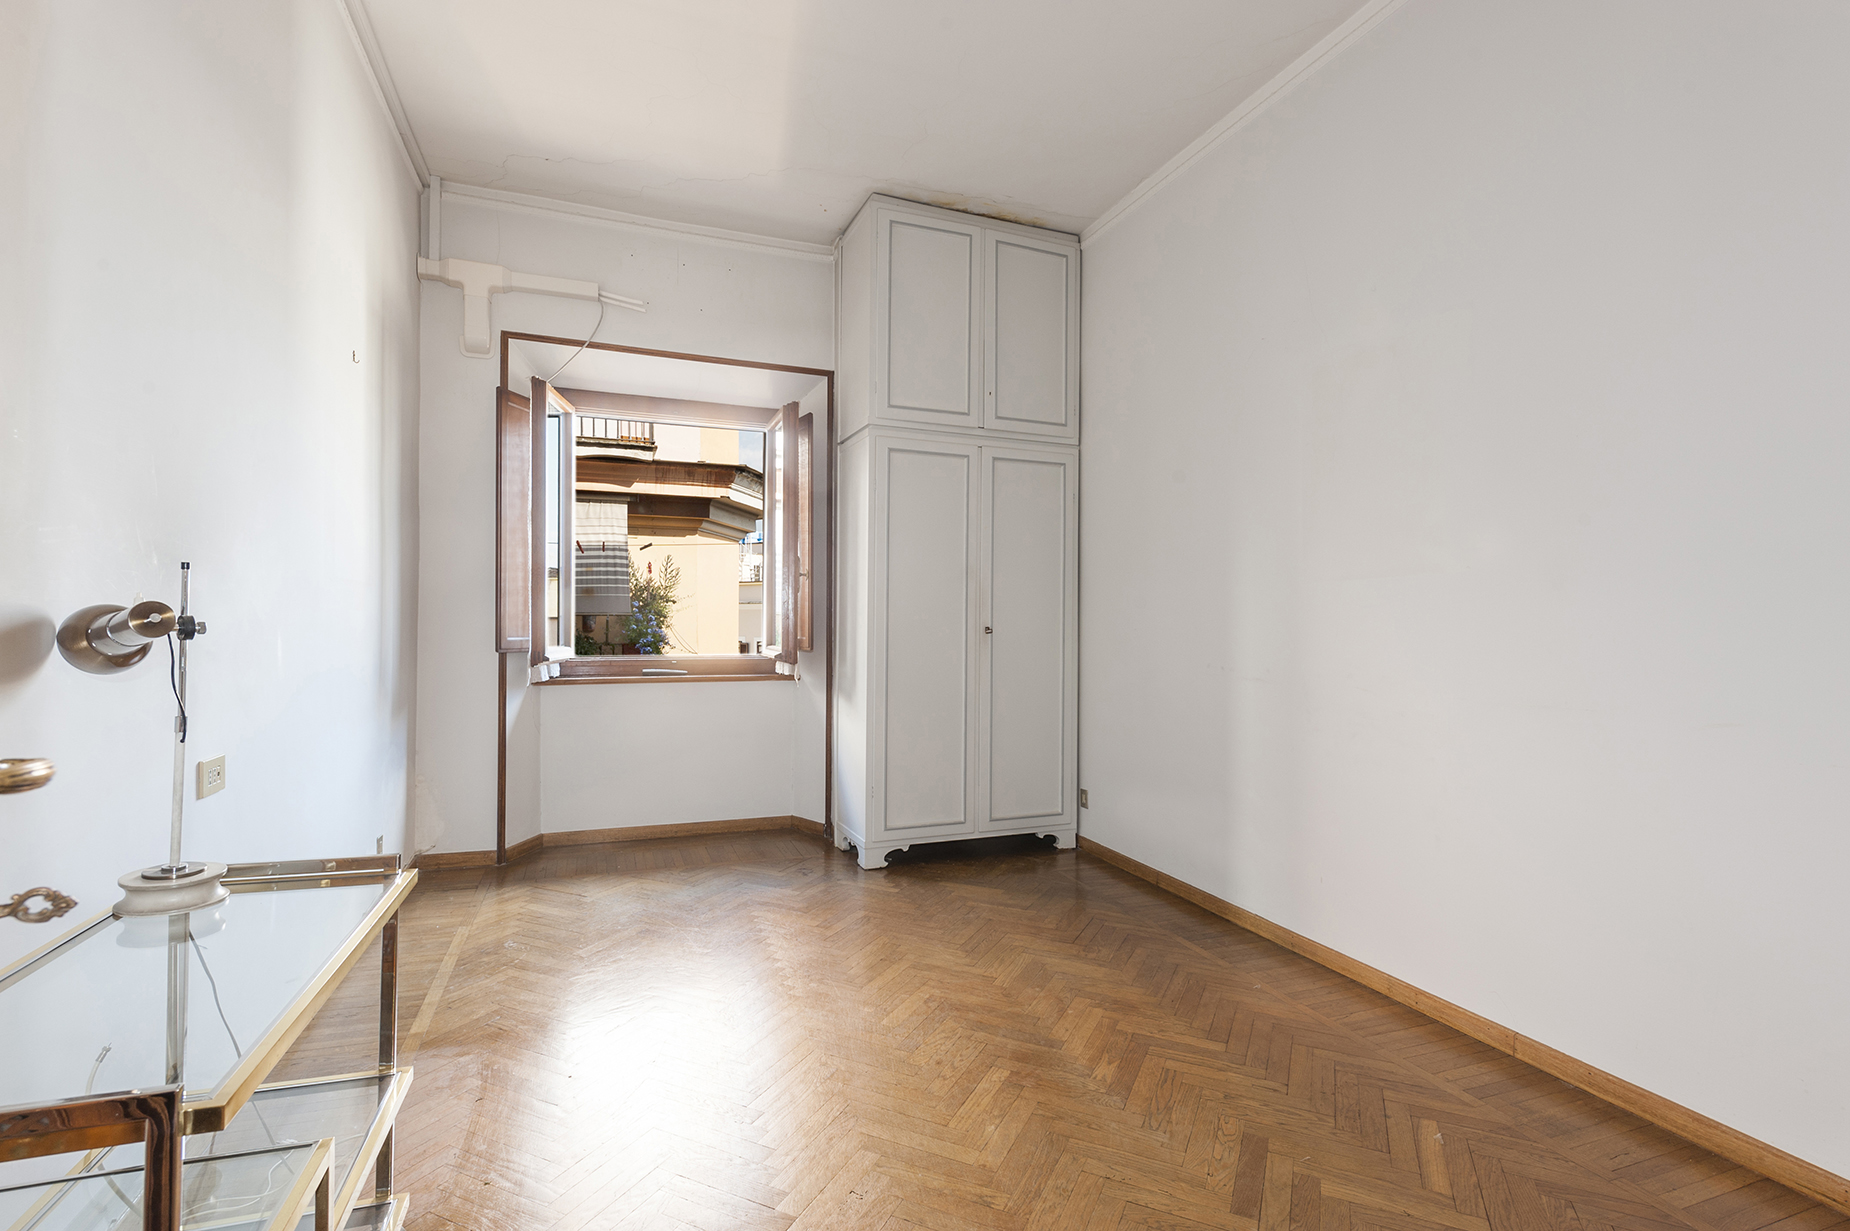 Additional photo for property listing at Elegant and bright apartment in the Sallustiano district Via Piave Rome, Rome 00187 Italy